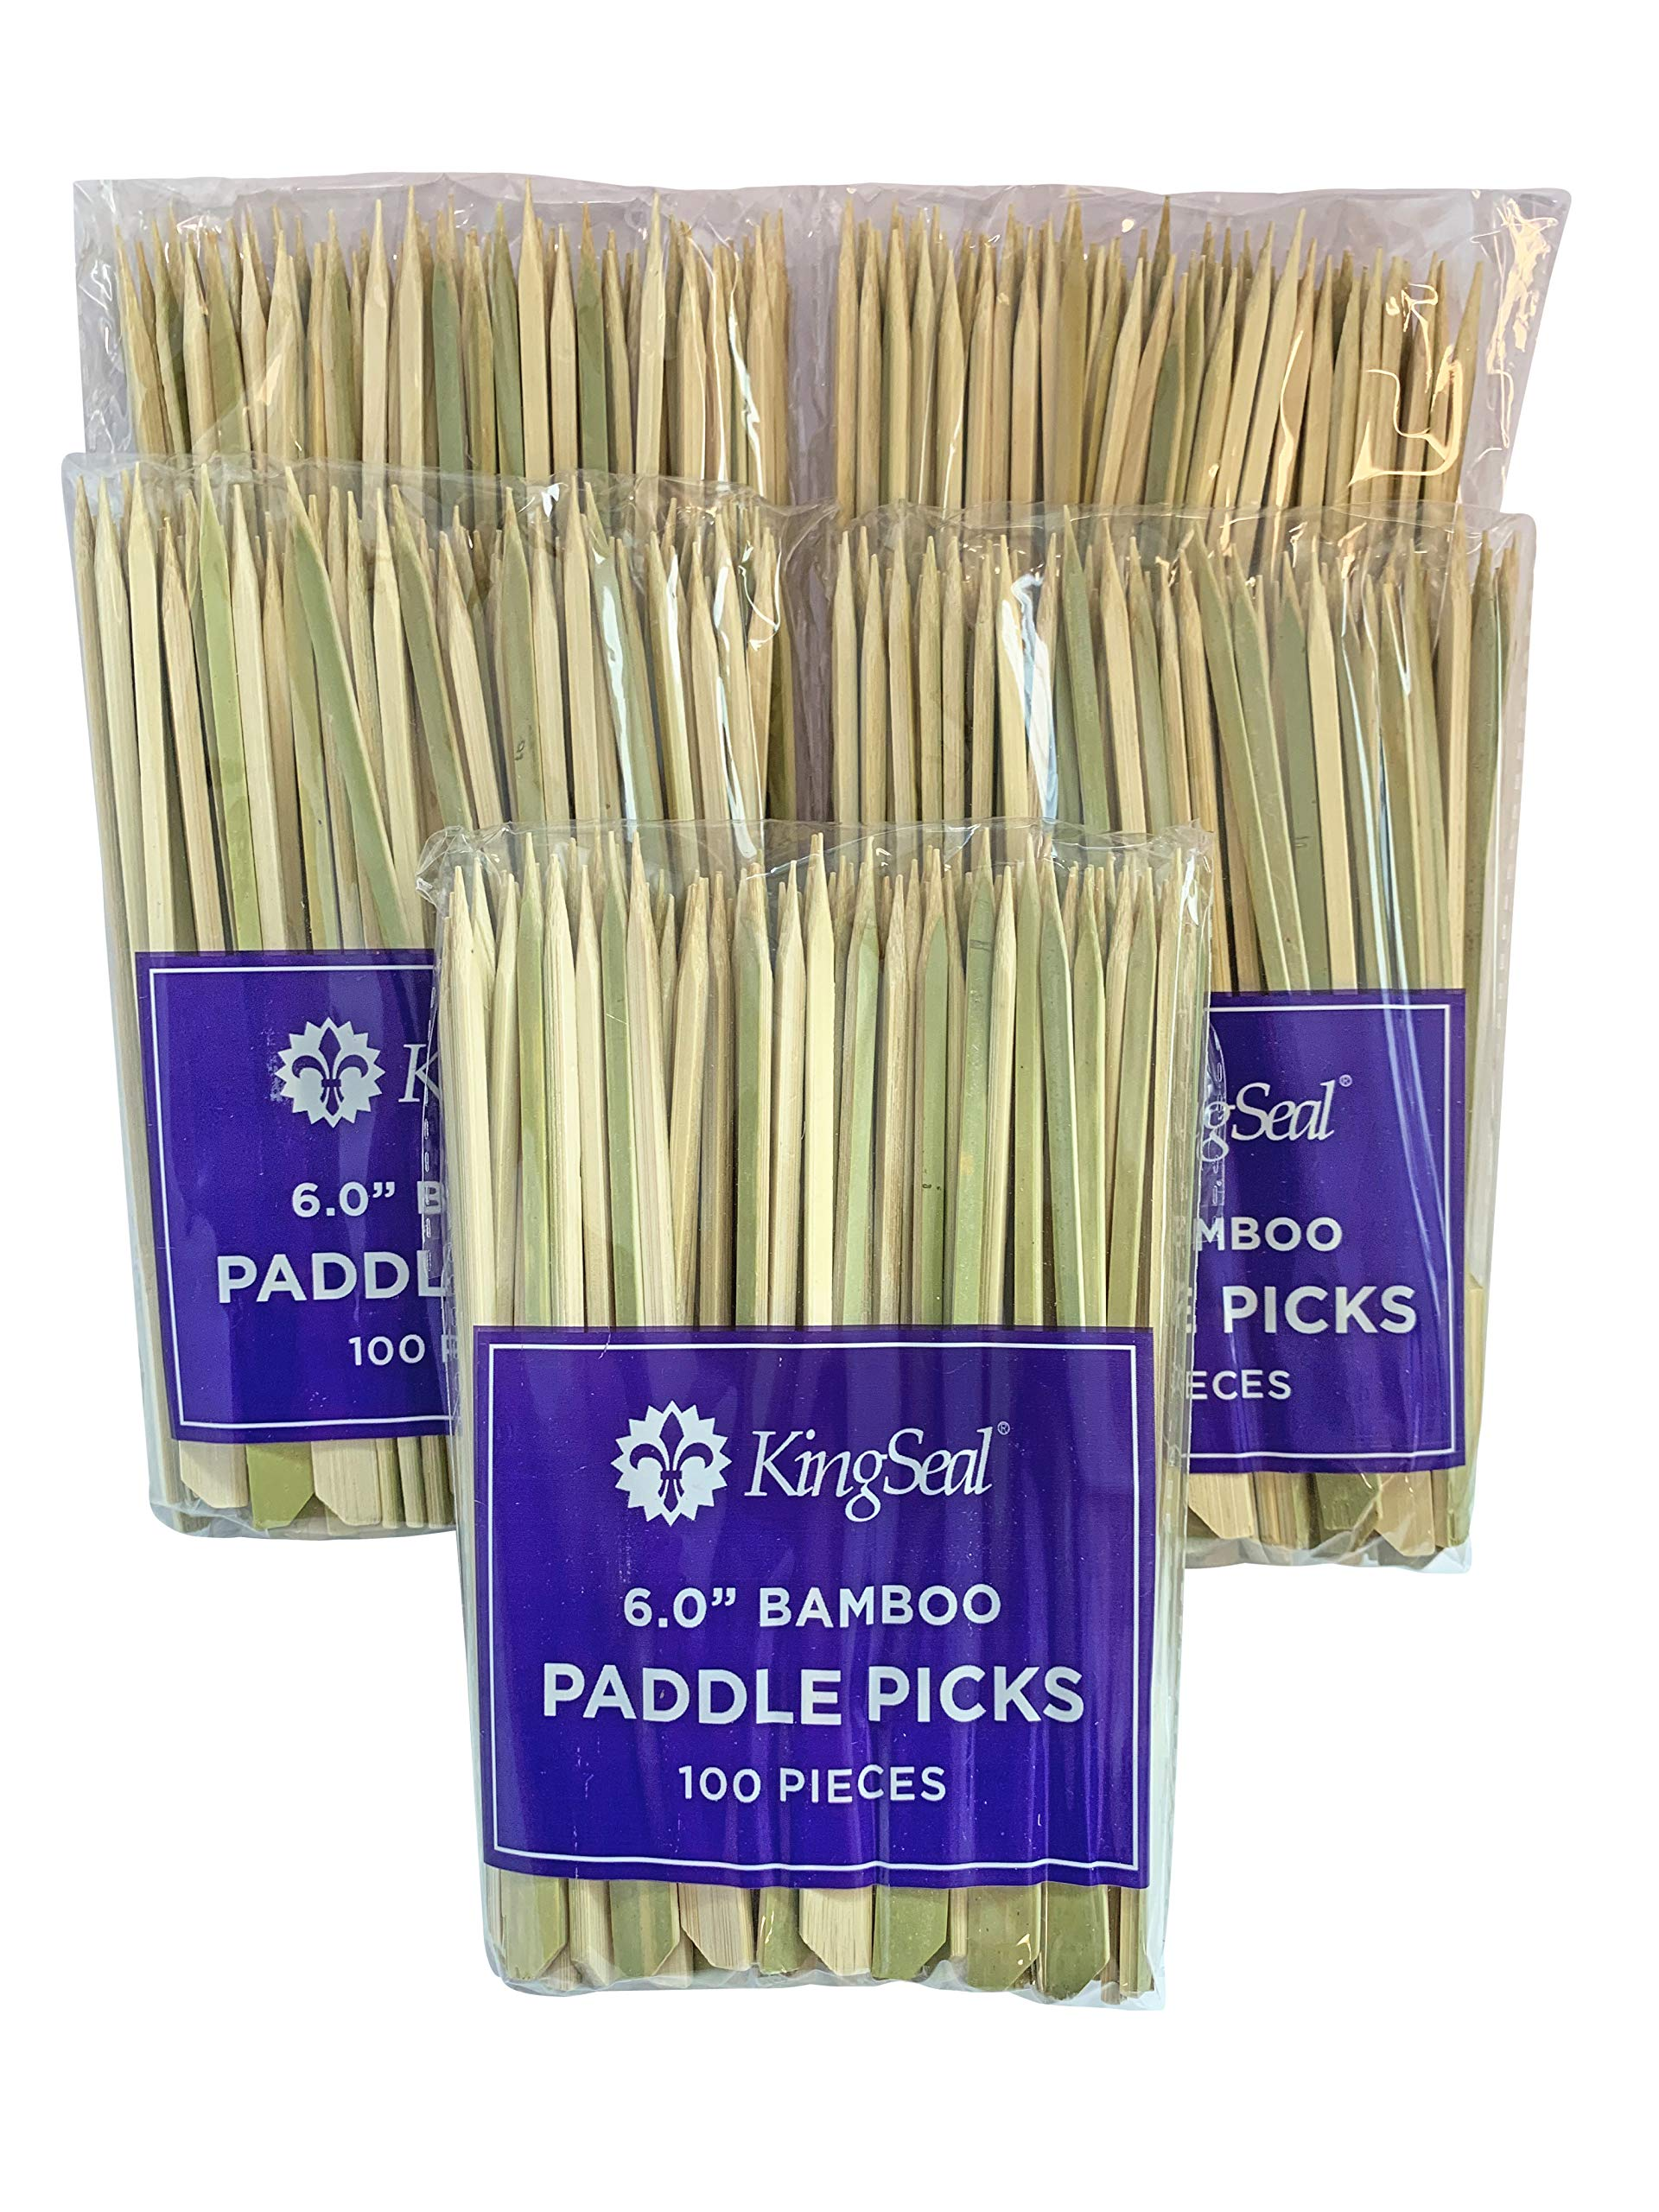 KingSeal Natural Green Bamboo Wood Paddle Picks, Skewers for Appetizers and Cocktails, 6.0 Inches - 10 Packs of 100 Per Pack